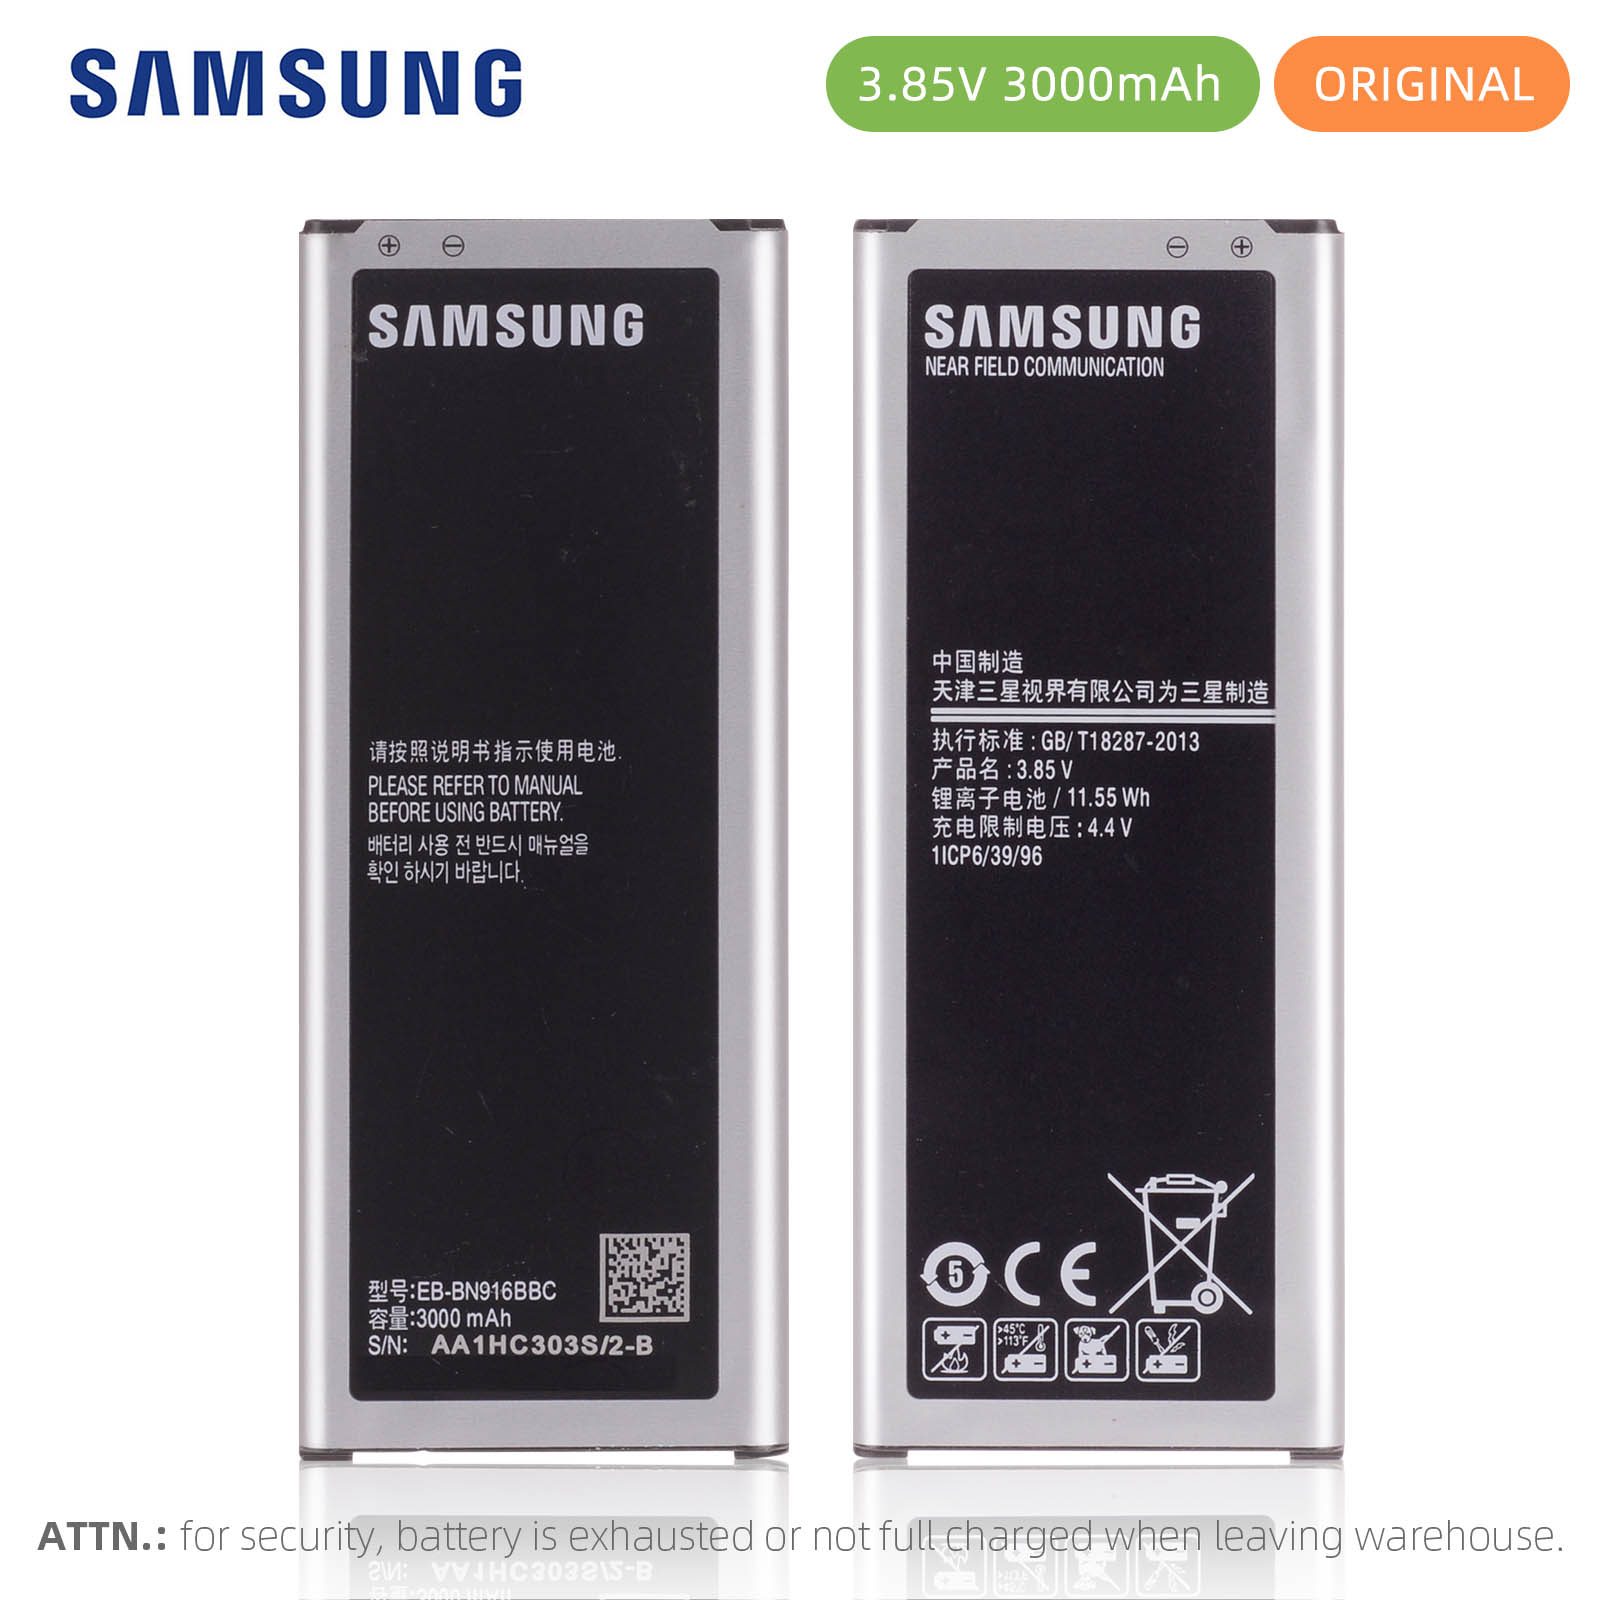 Original Samsung EB-BN916BBC <font><b>Battery</b></font> For Samsung GALAXY <font><b>NOTE</b></font> <font><b>4</b></font> N9106W N9108V N9100N 9109V With NFC <font><b>3000mAh</b></font> image